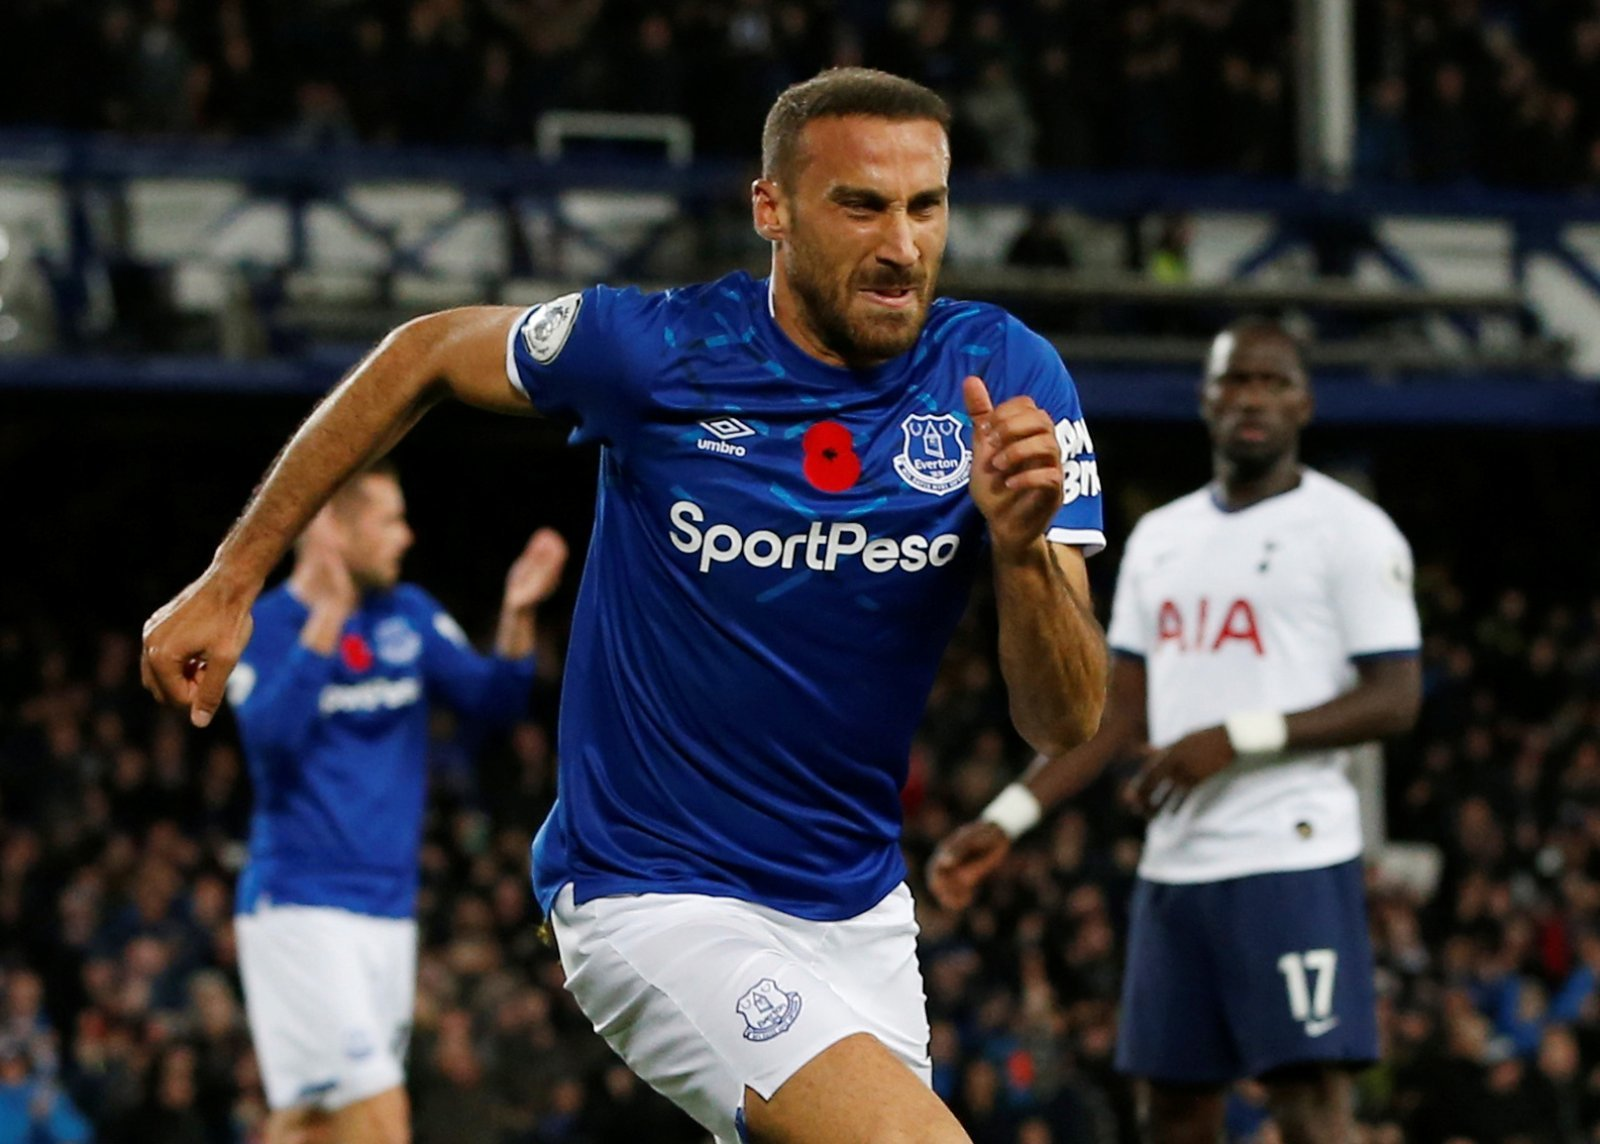 Everton: Fans shower Cenk Tosun with praise after late equaliser vs Spurs